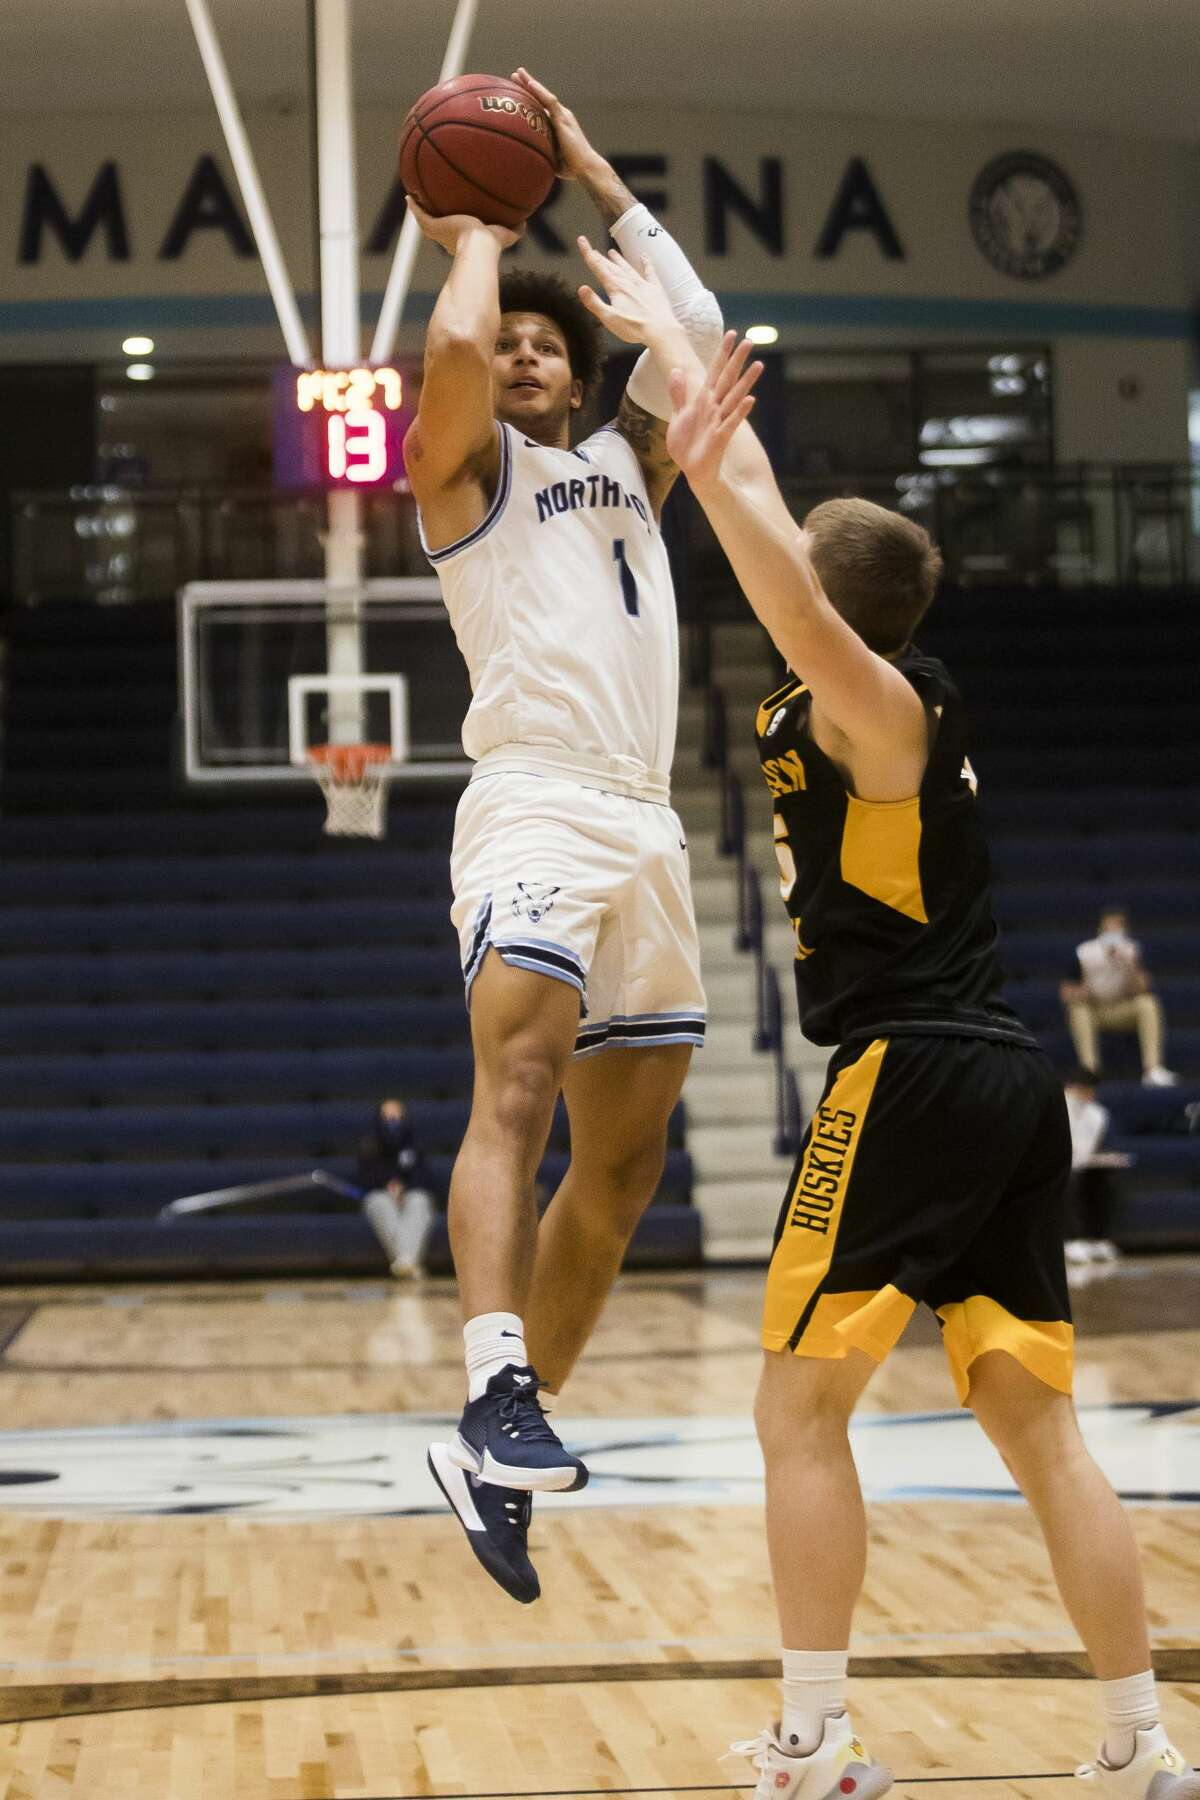 Northwood's Evan Lowden takes a shot during the Timberwolves' game against Michigan Tech Friday, Jan. 15, 2021 at Northwood University. (Katy Kildee/kkildee@mdn.net)